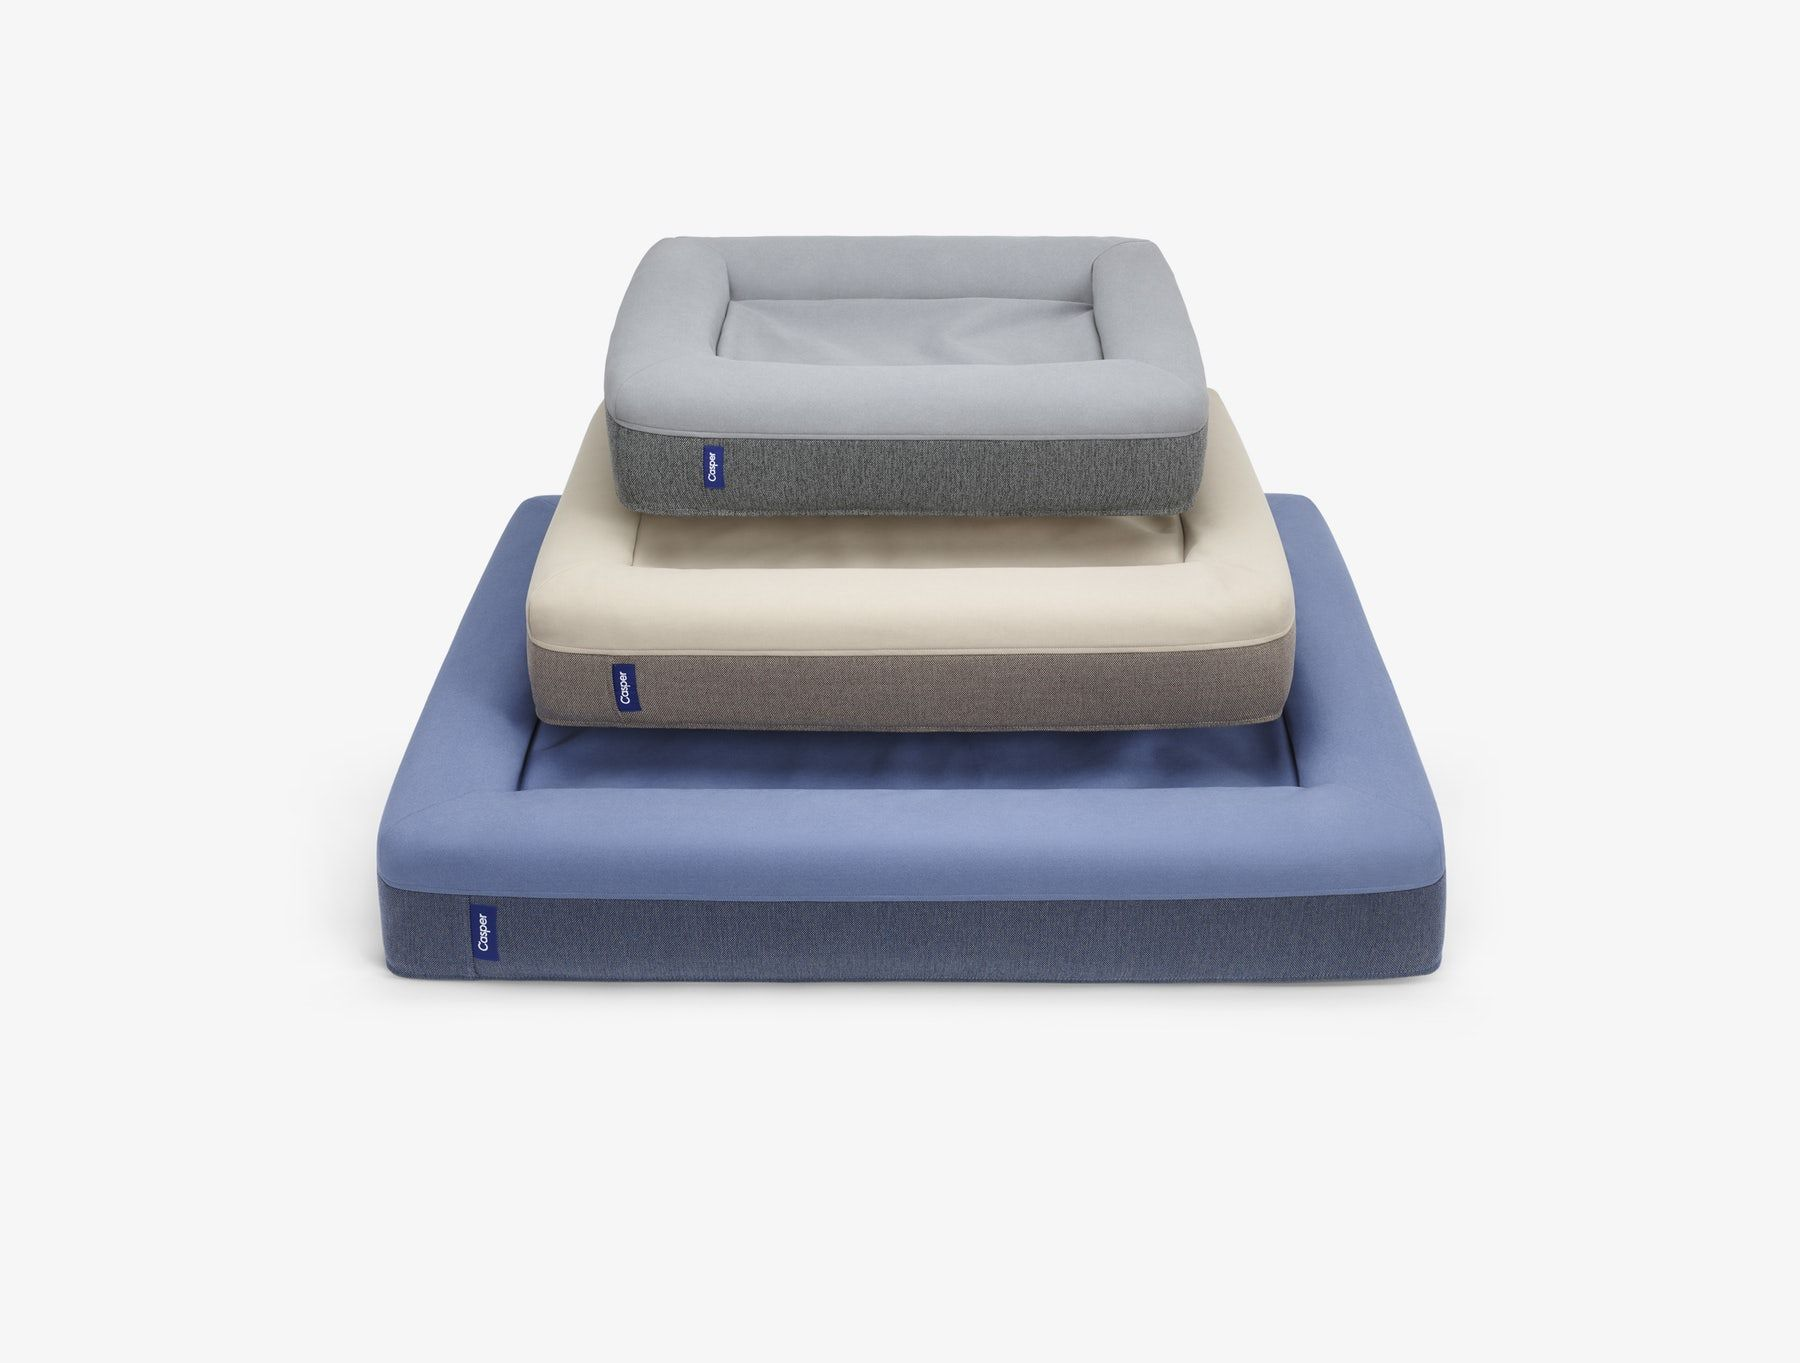 three sizes of the casper dog mattress stacked on top of each other